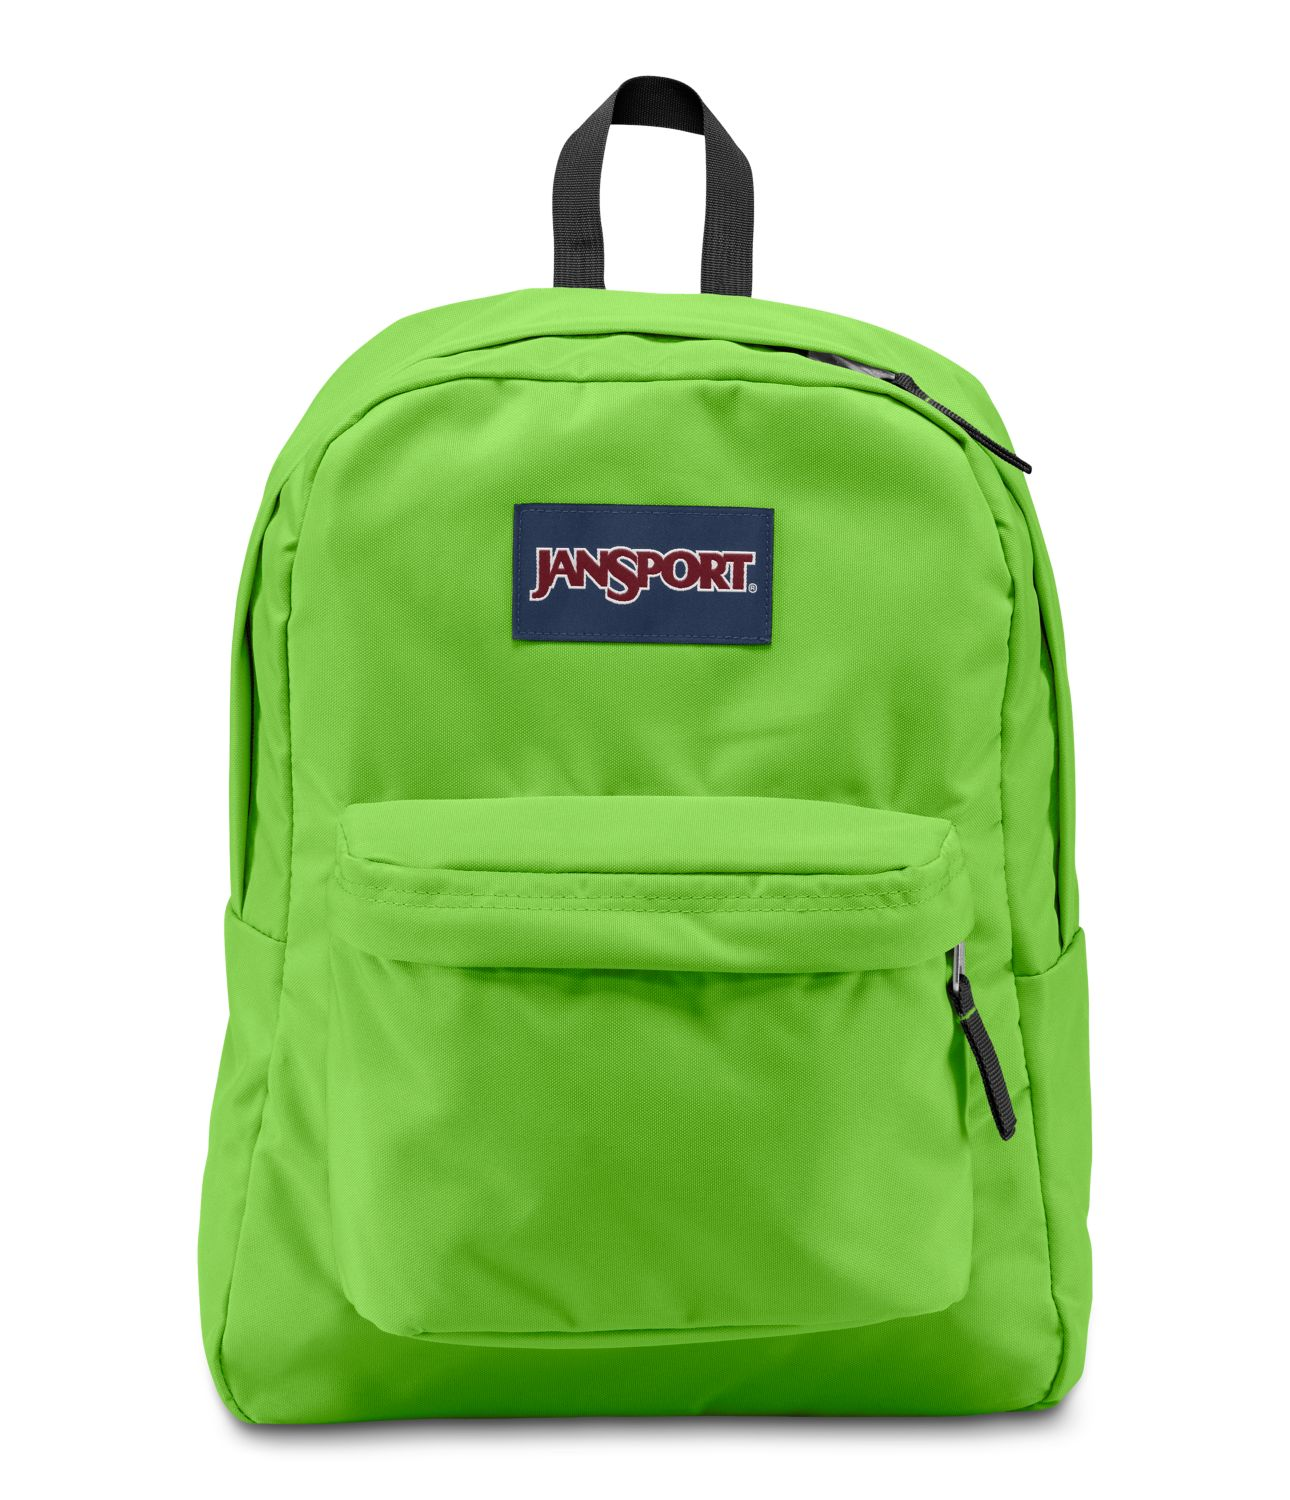 Green Jansport Backpacks - Crazy Backpacks